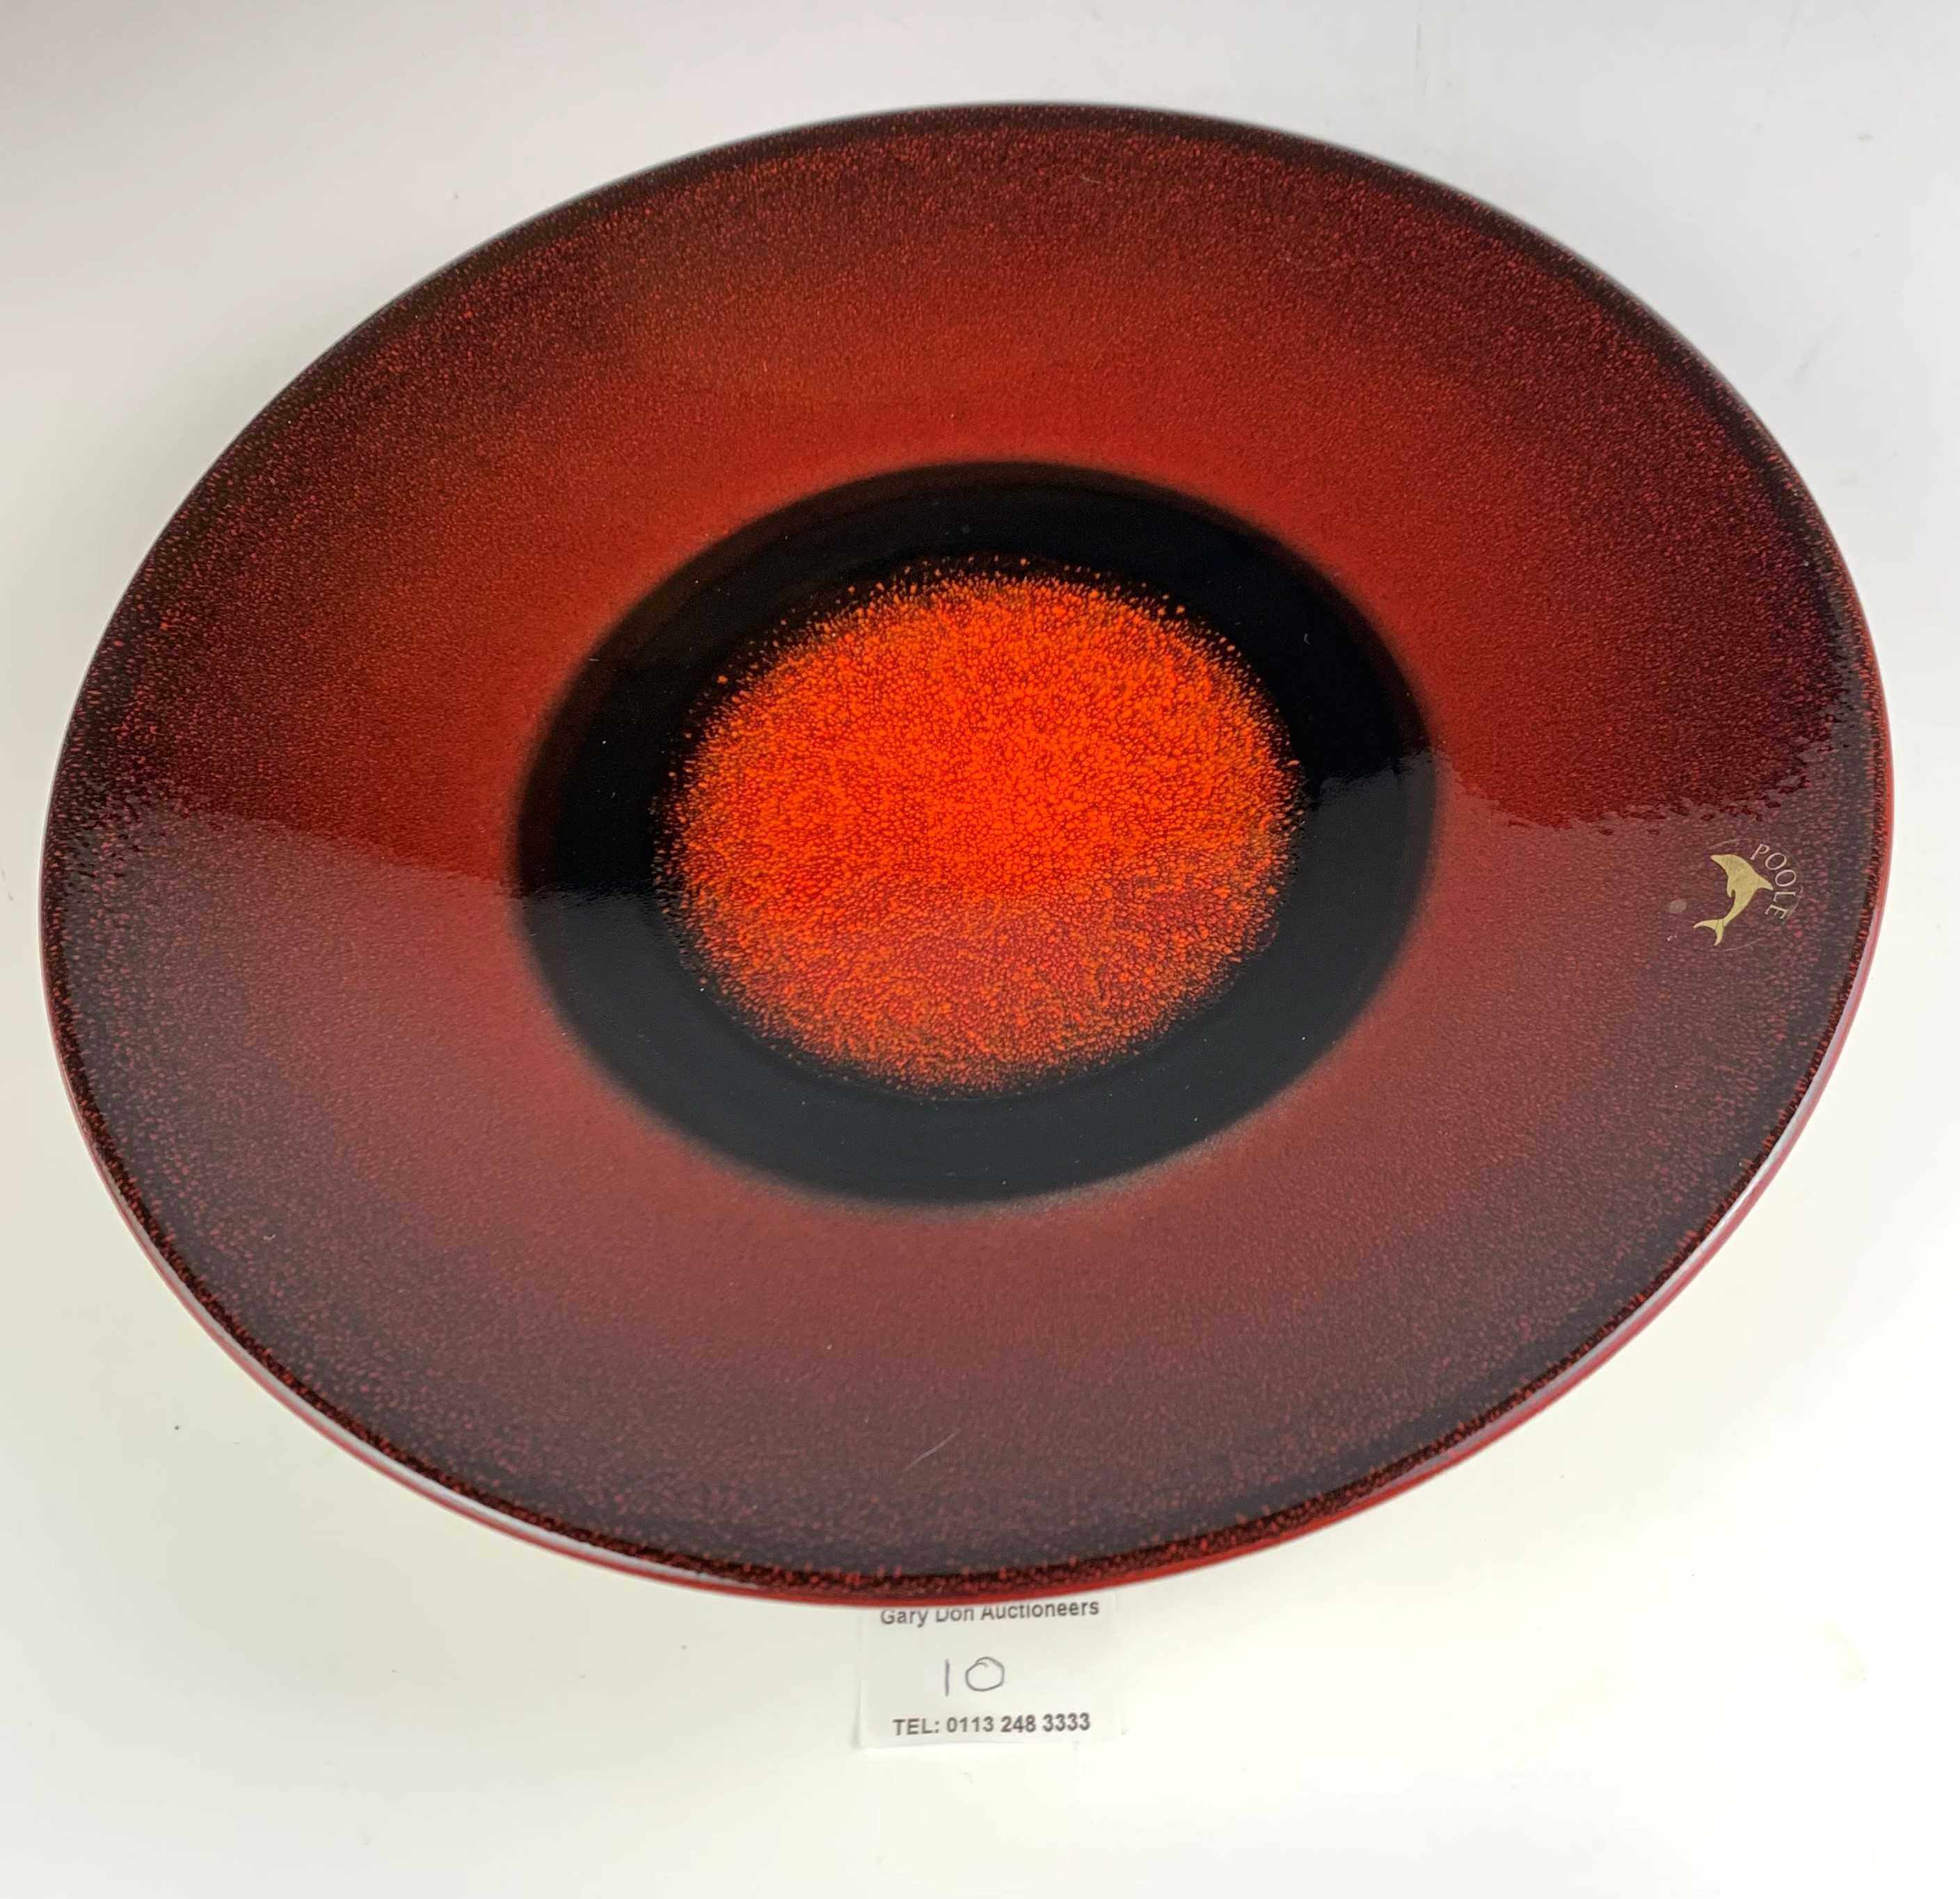 """Limited edition Poole plate, Mars, to mark the Alignment of the Planets 2000, 10.5"""" diameter, no - Image 4 of 7"""